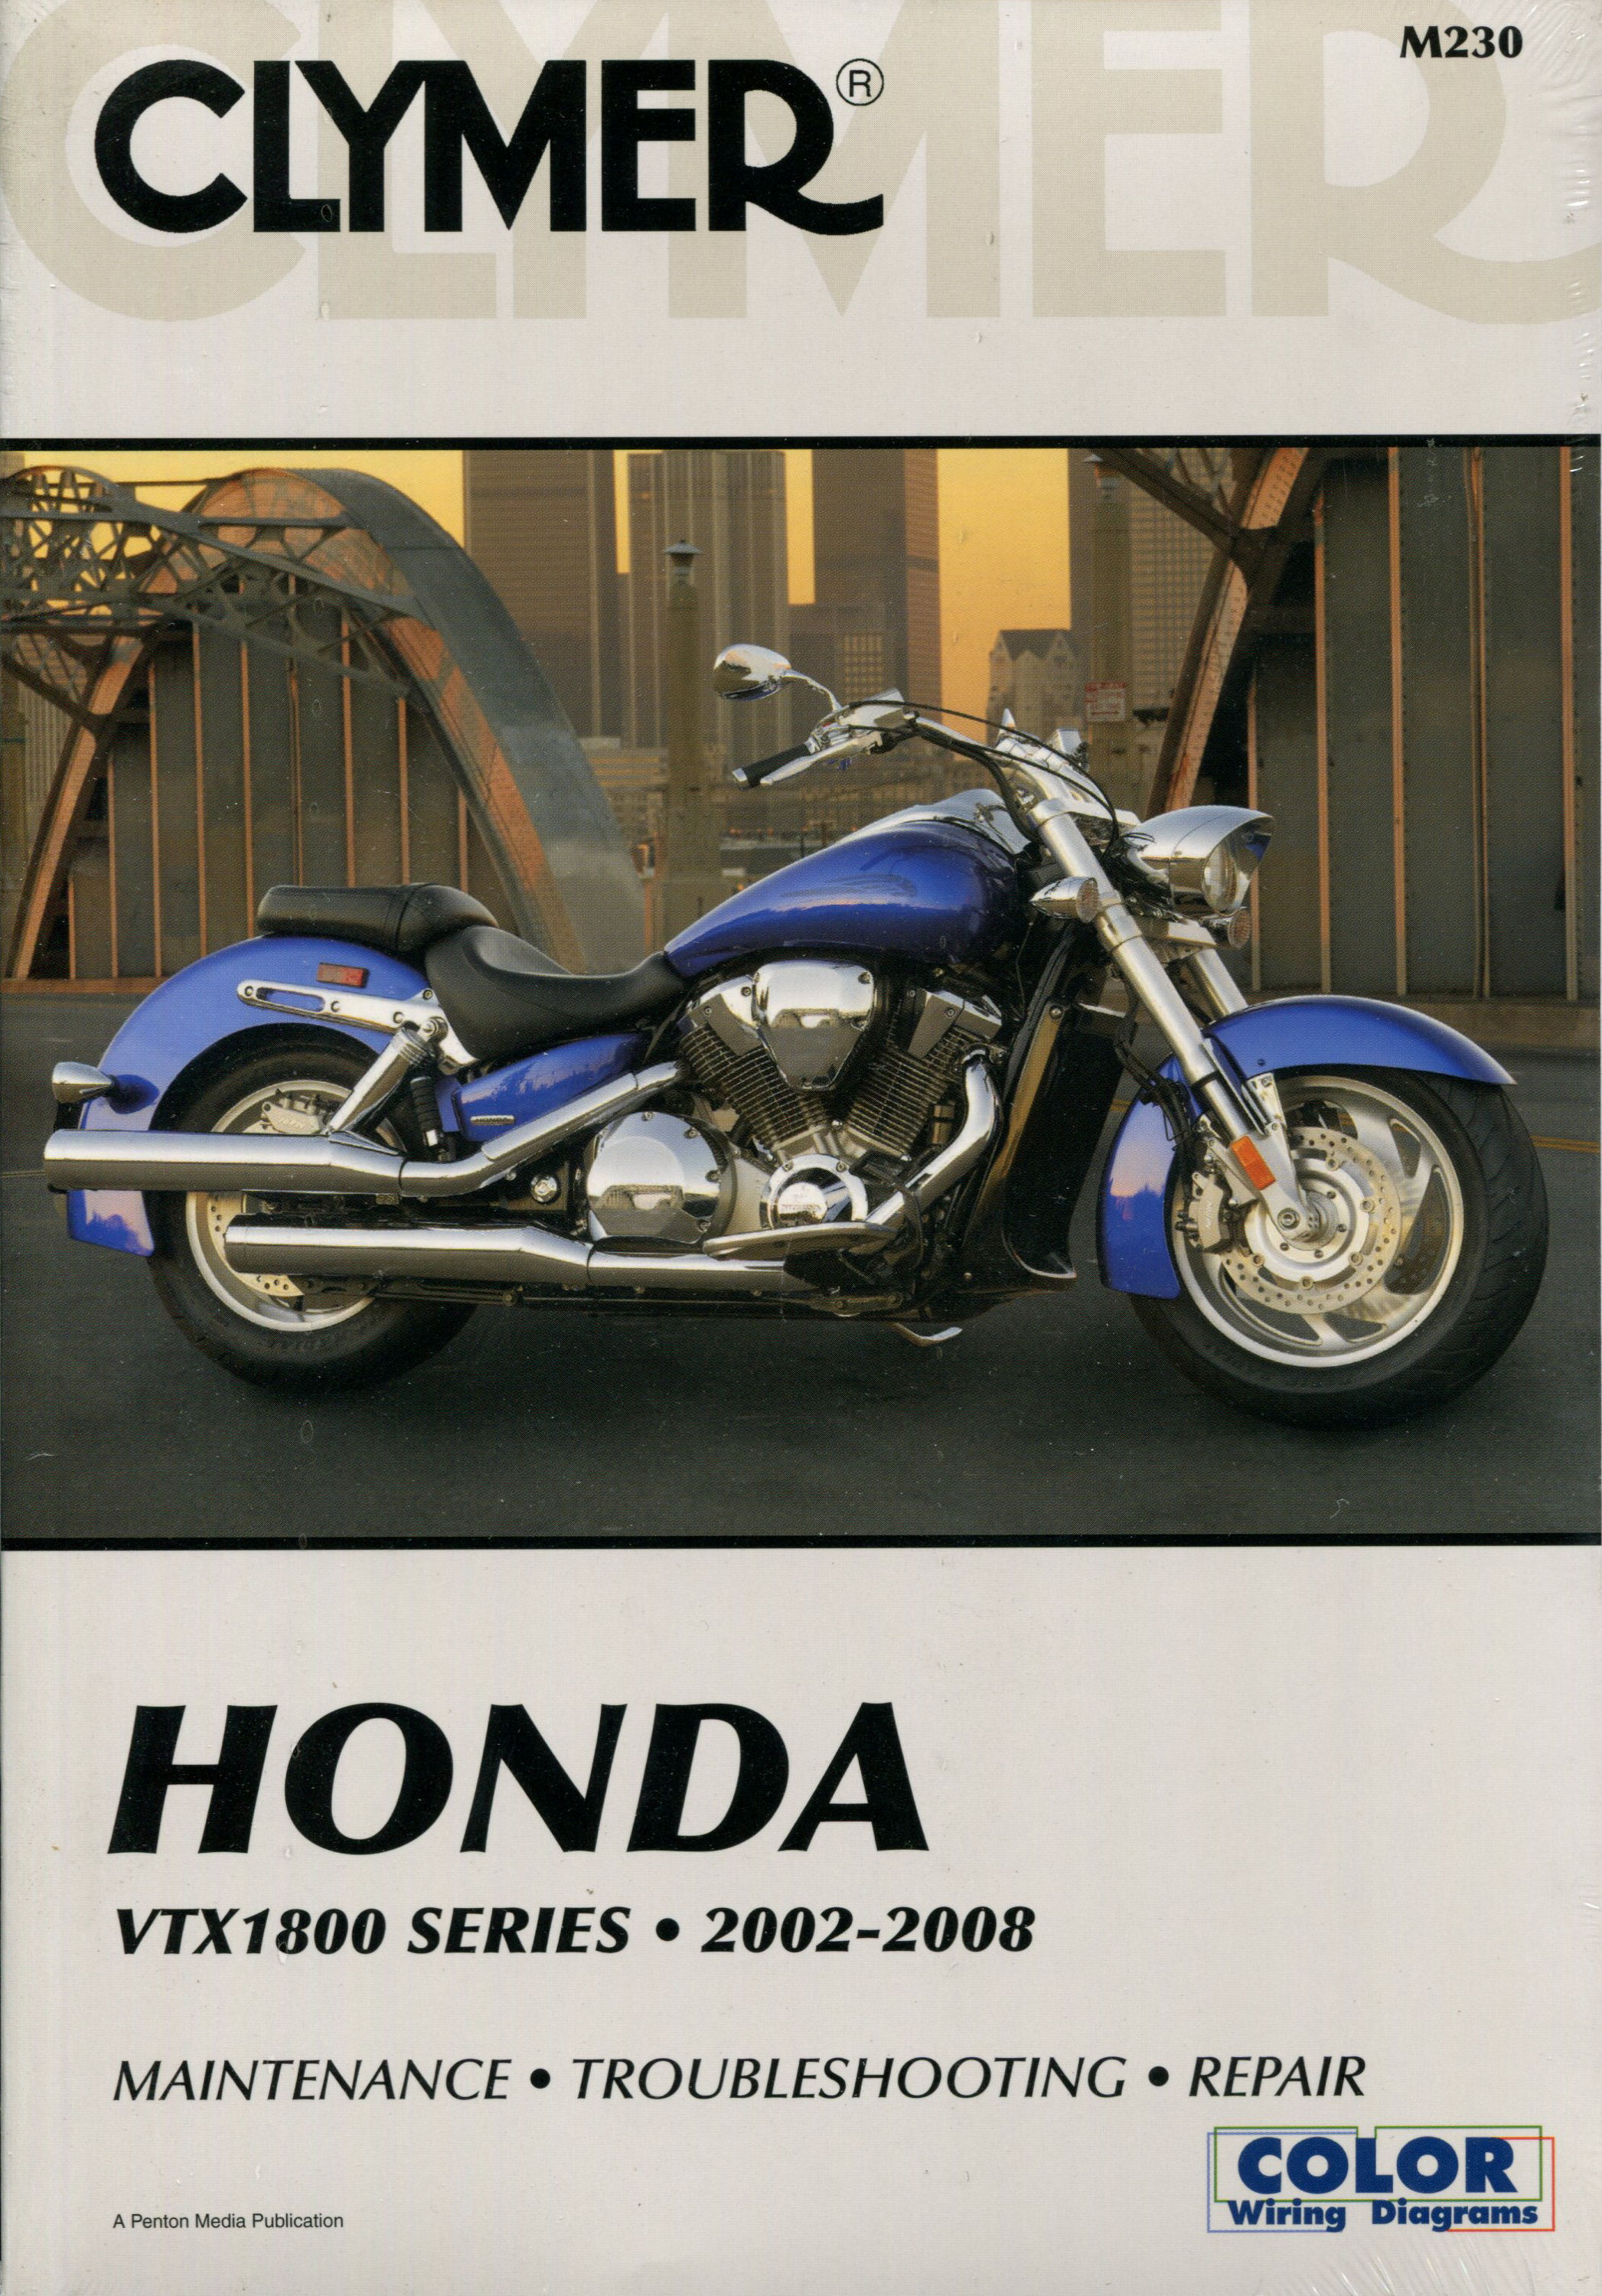 2001 Honda Vtx 1800 N Pics Specs And Information 2005 Cbr 600 Rr Color Wiring Diagram Wallpapers 134016